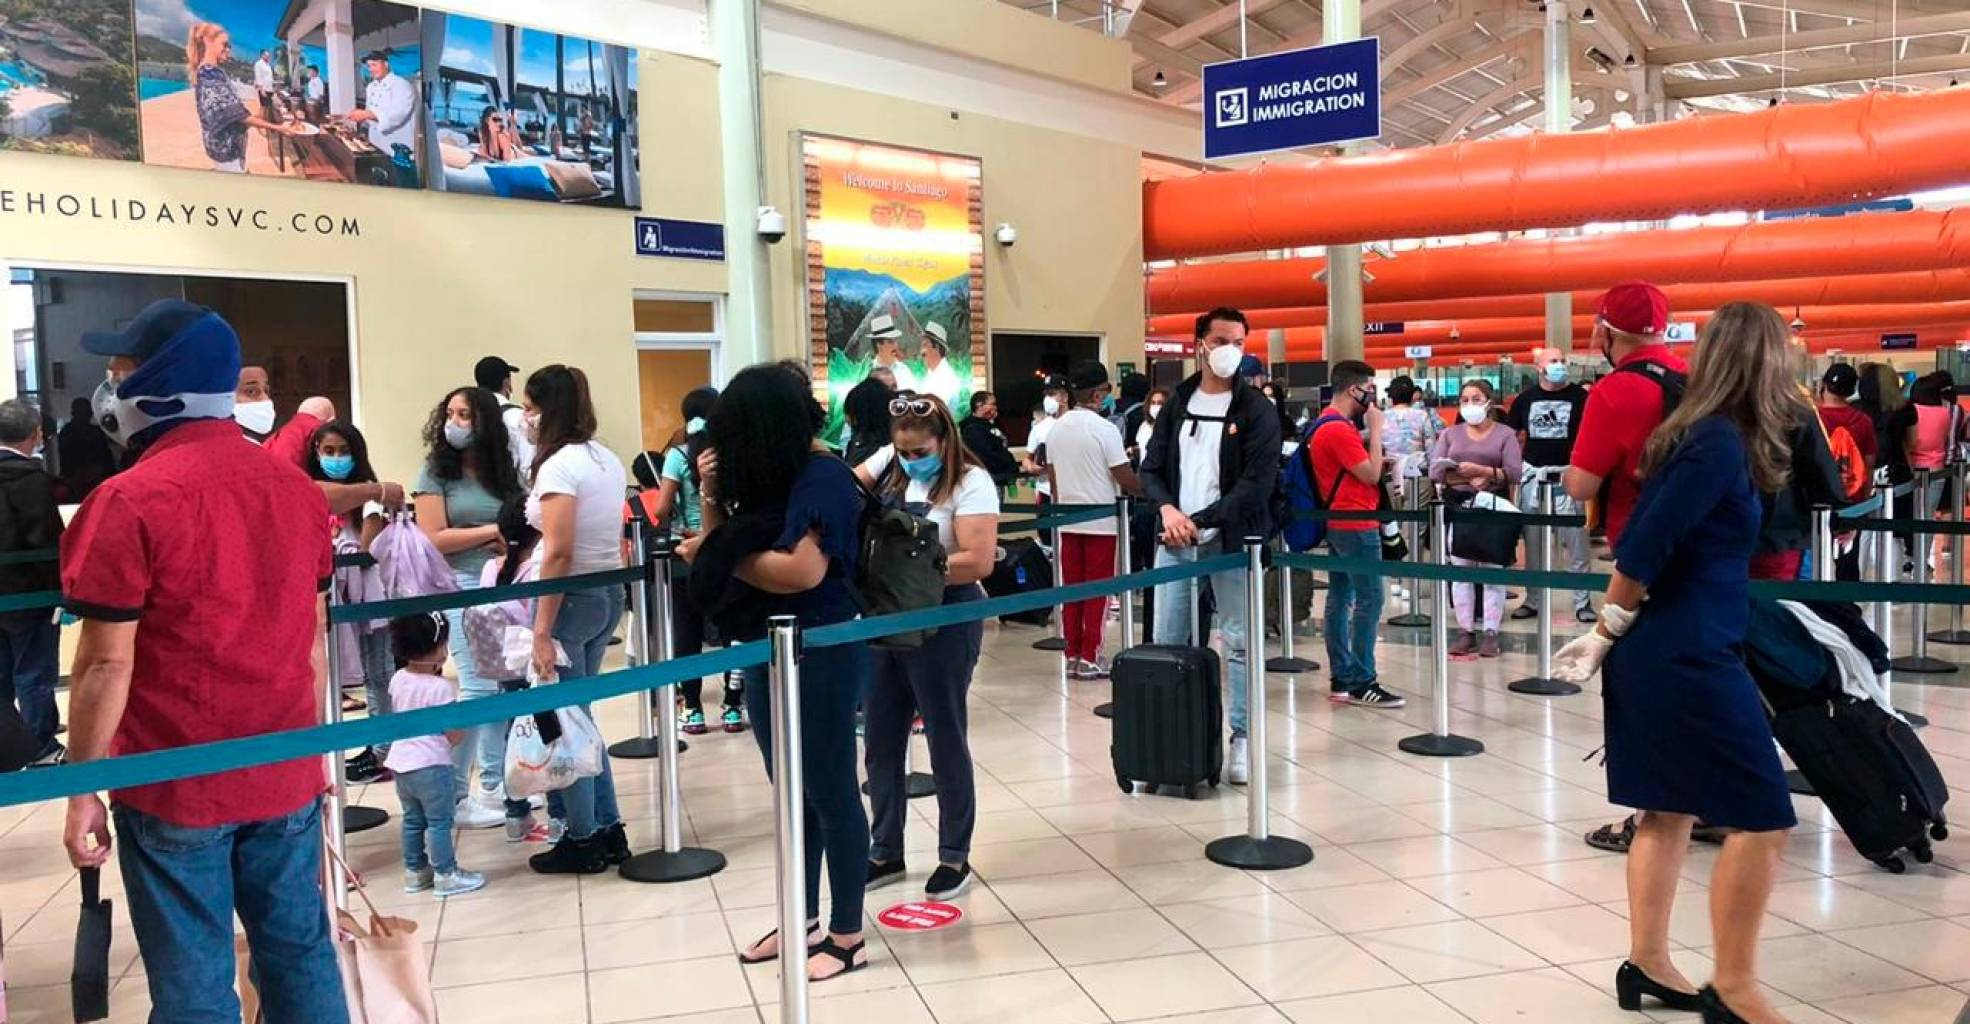 The Dominican Republic begins ordering PCR test travelers from Brazil, UK and South Africa